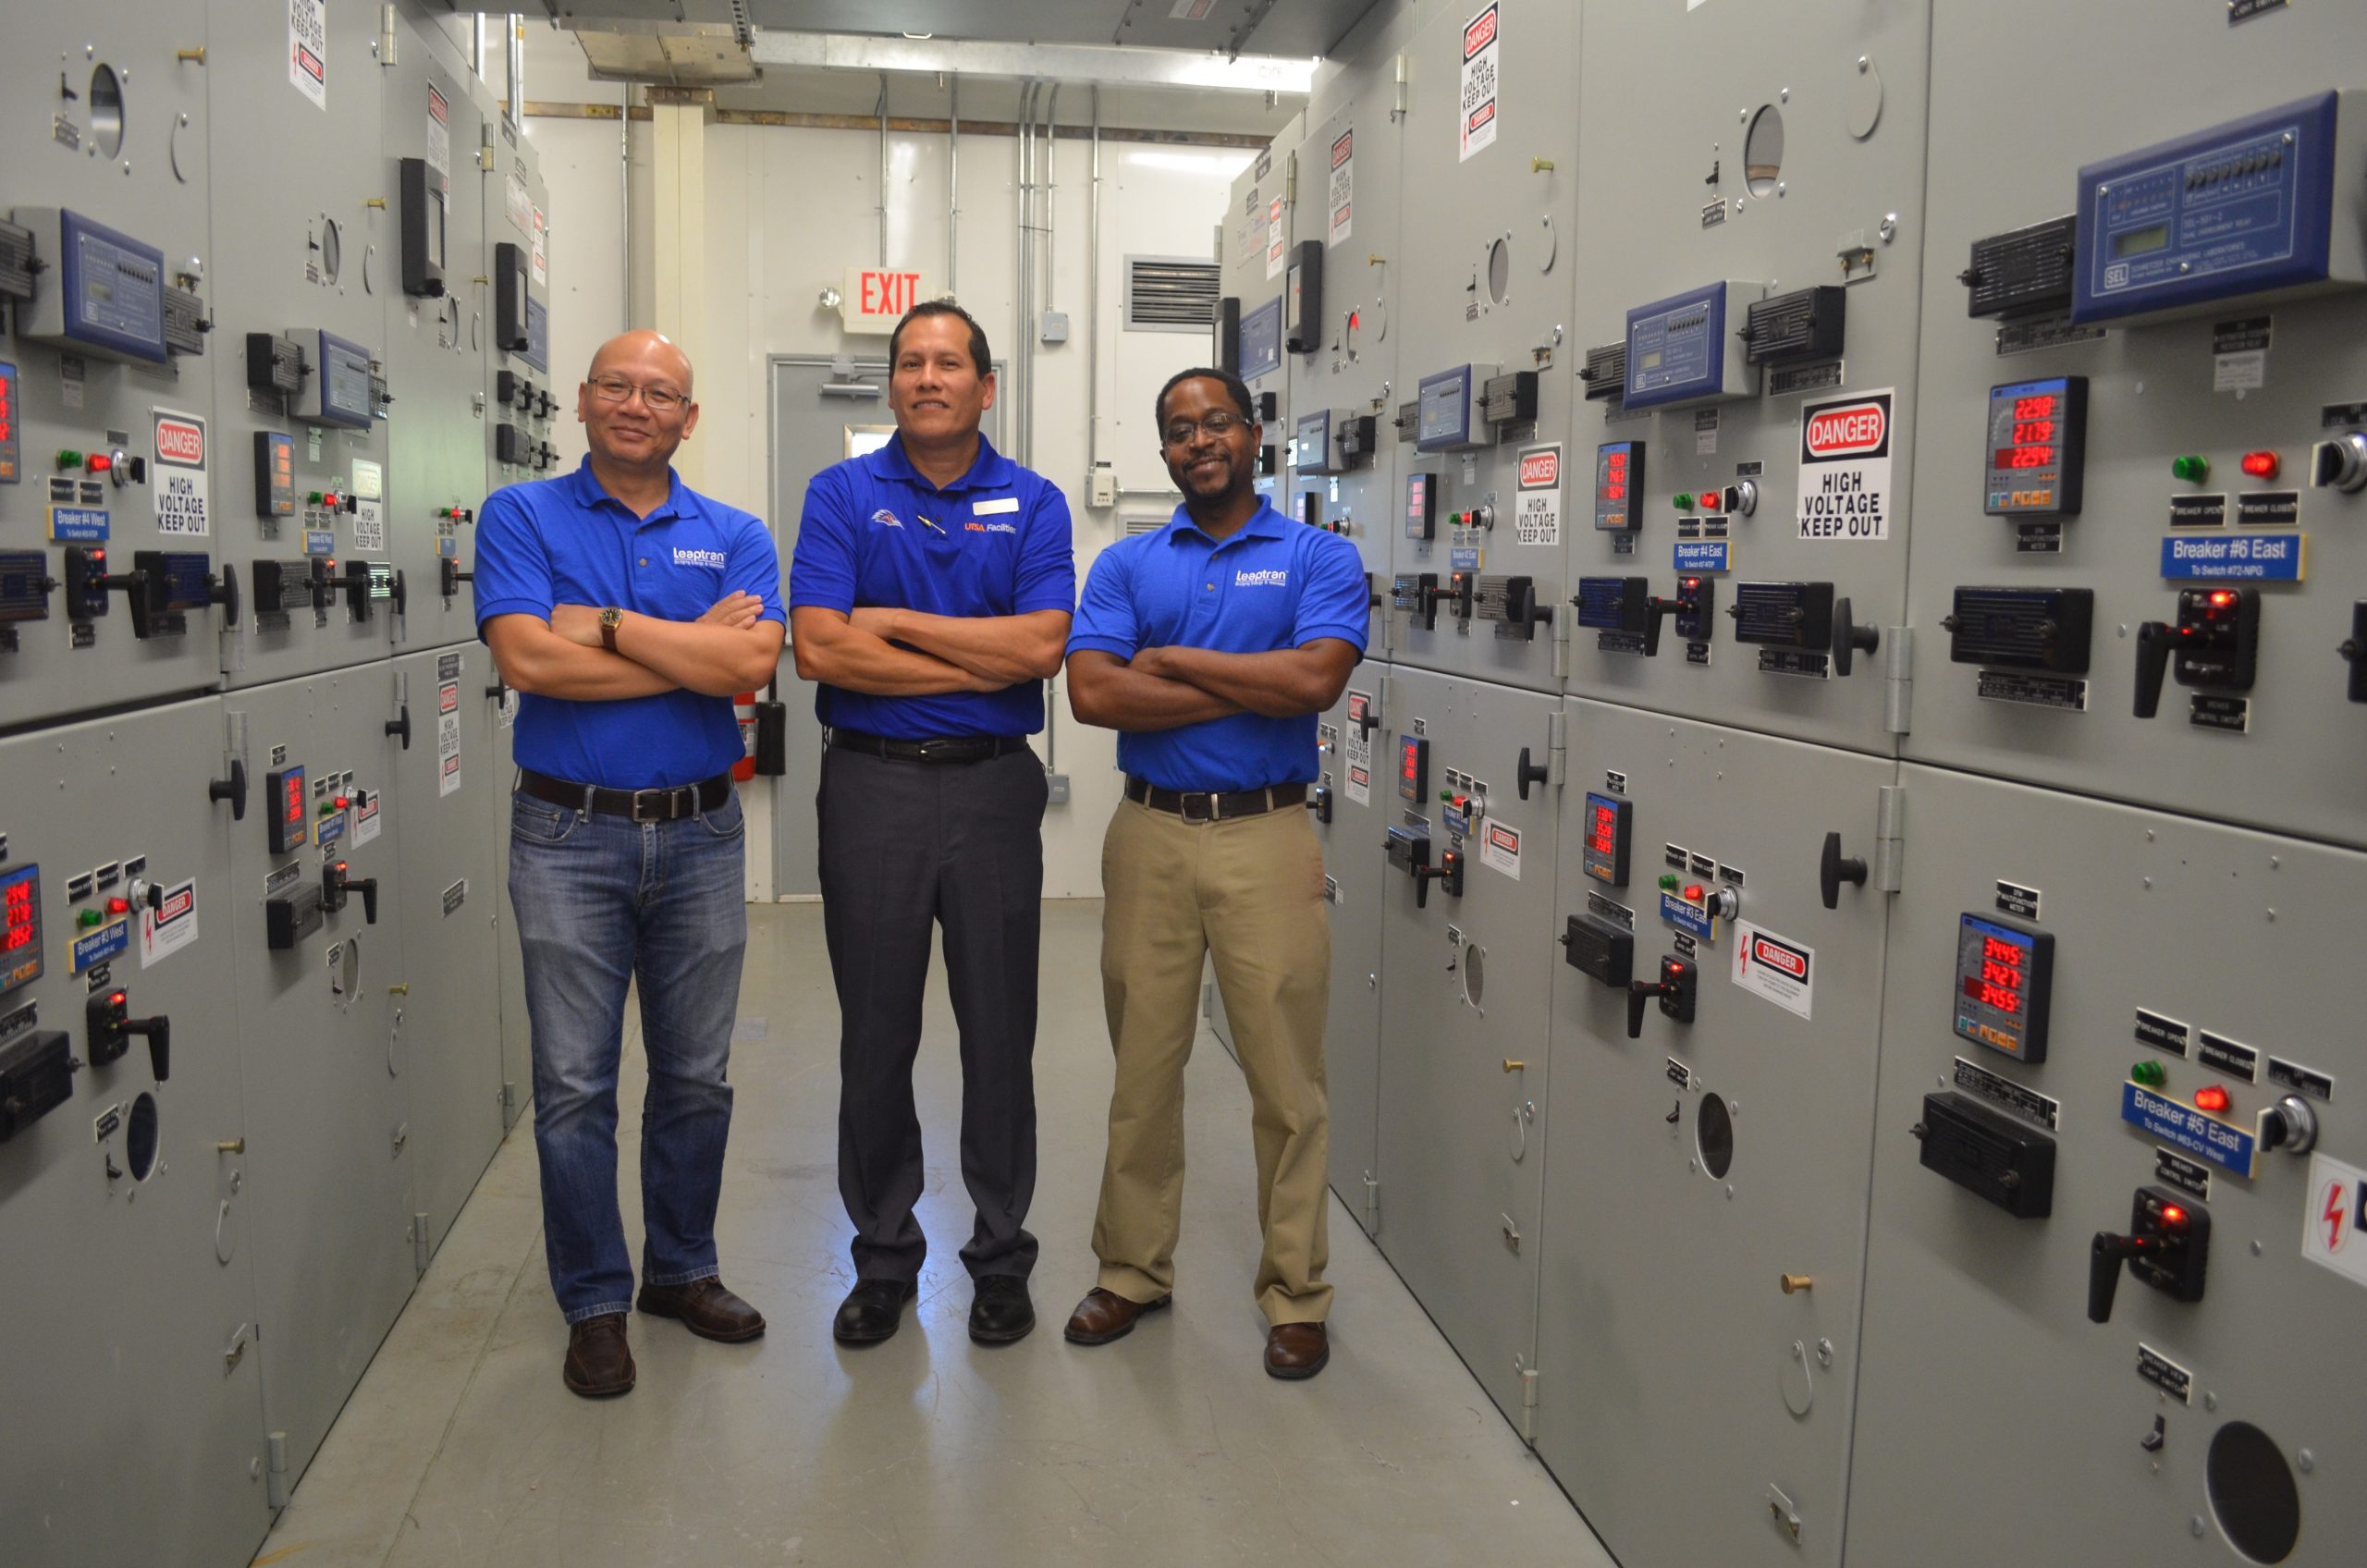 UTSA Piloting Innovation from Startup Leaptran To Manage Campus Energy Usage